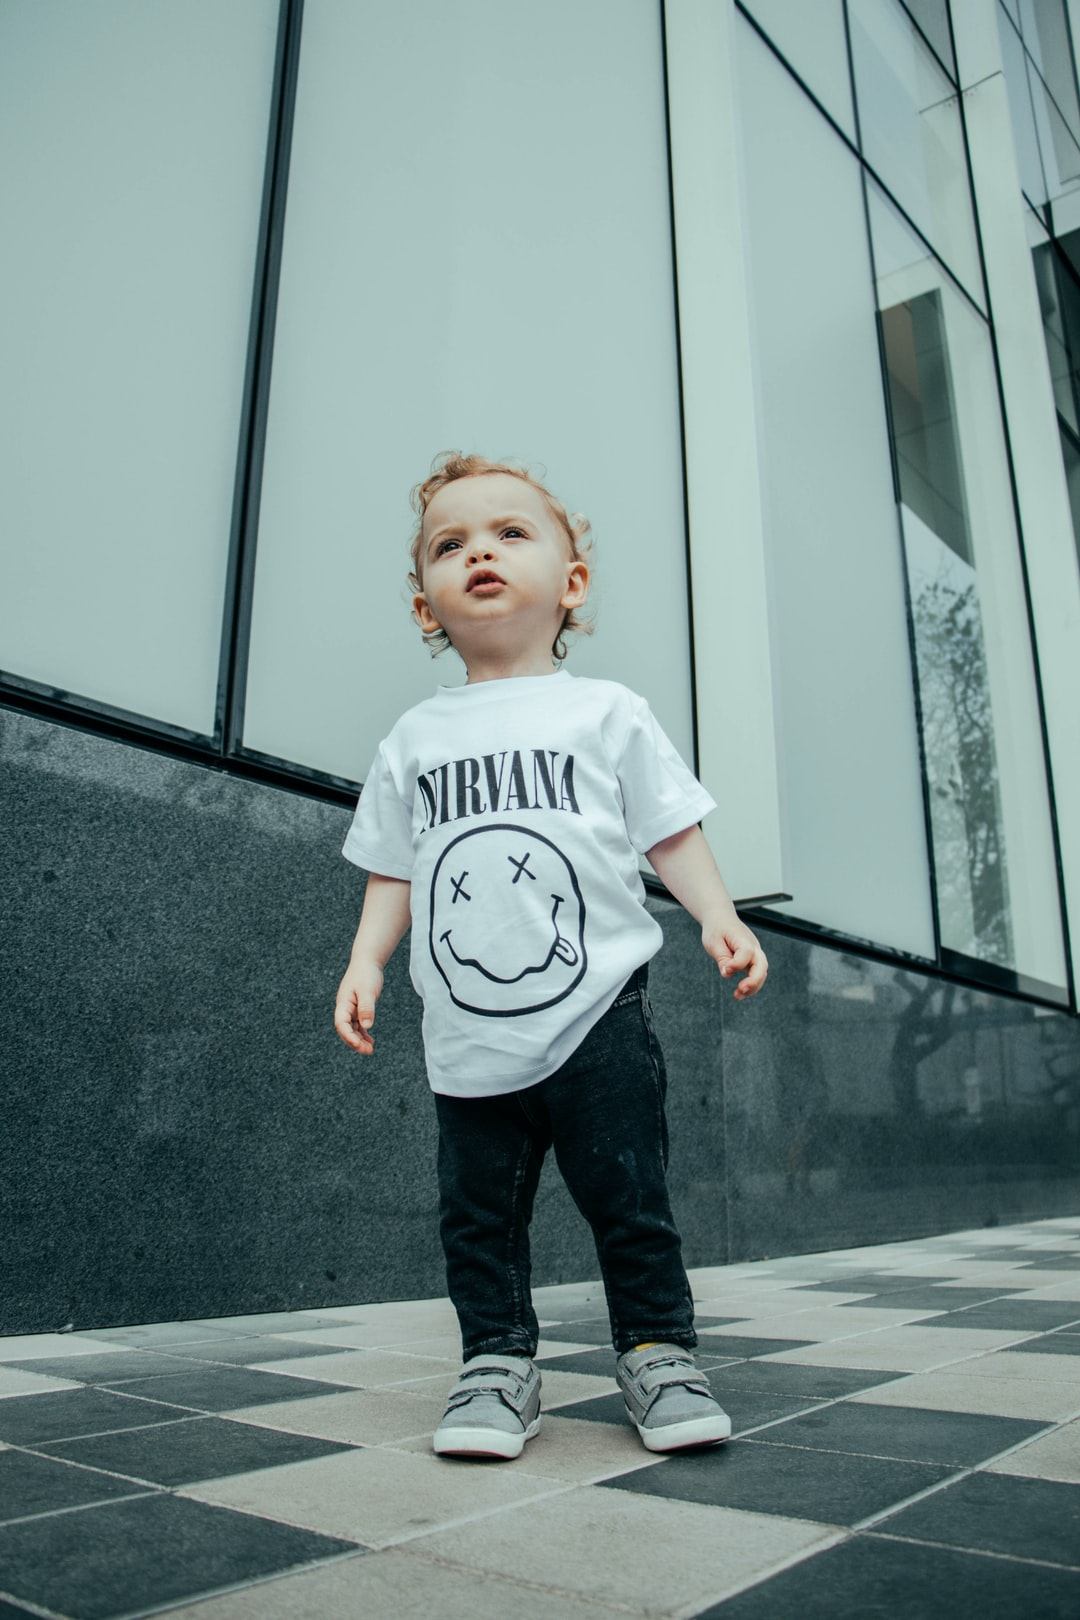 child in Nirvana shirt standing near building